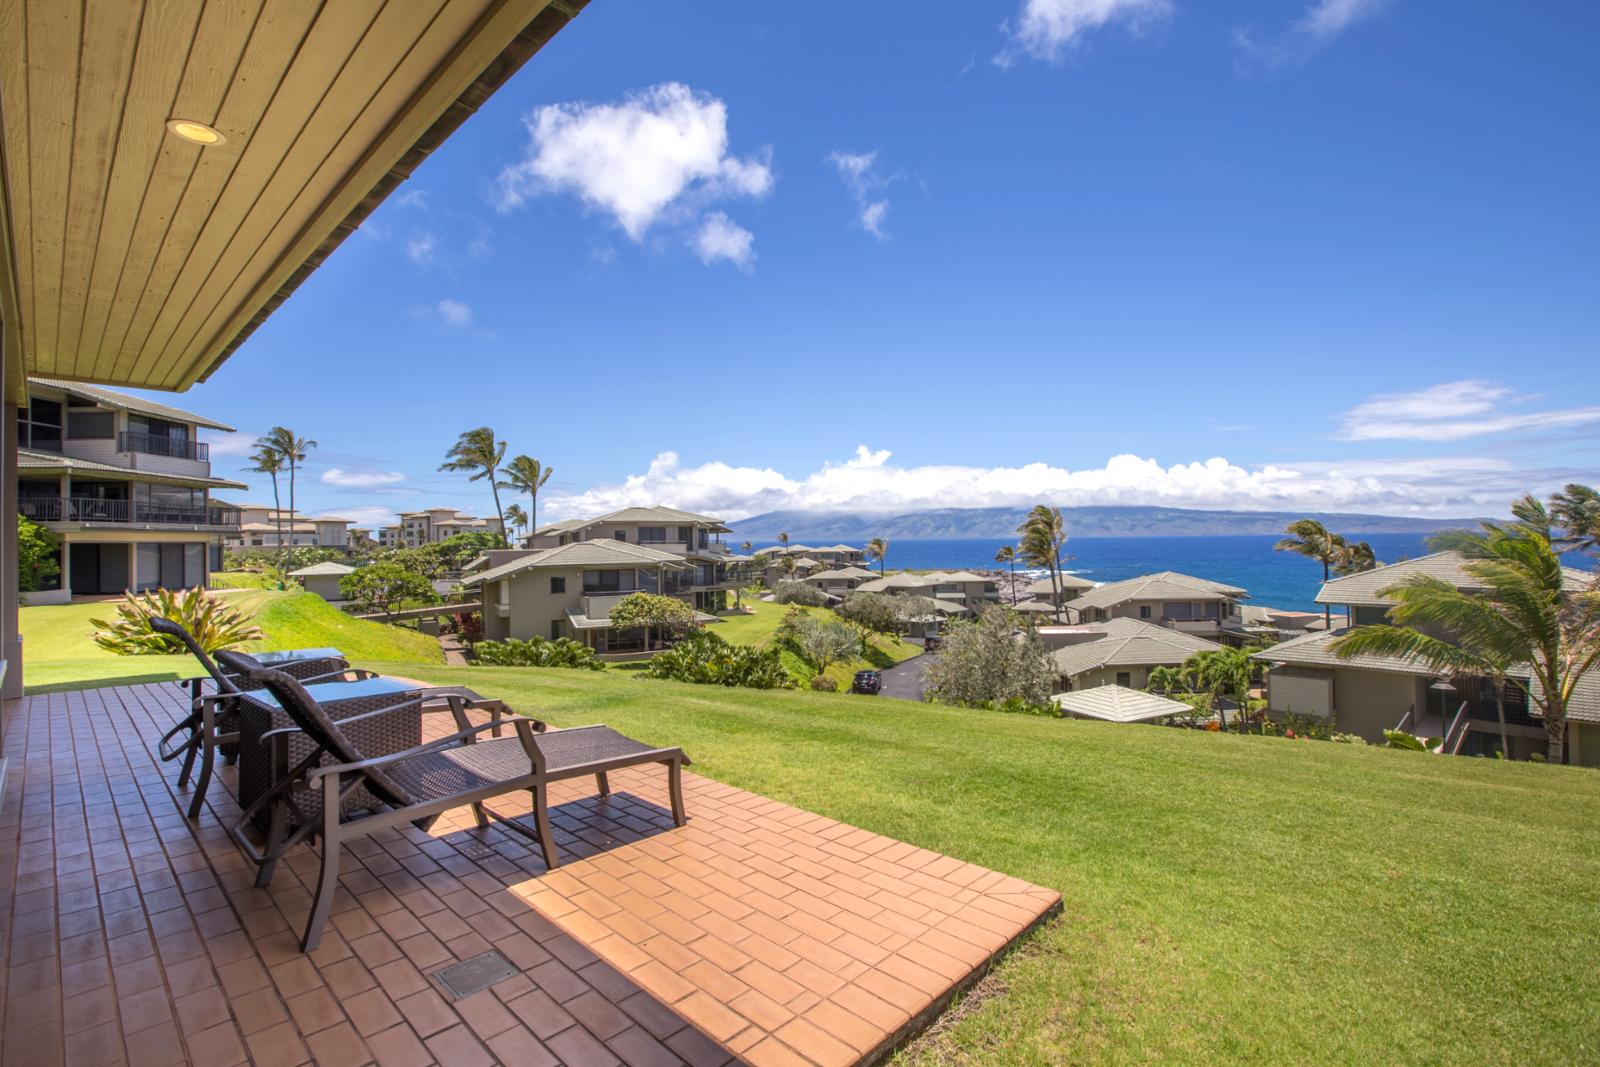 Endless ocean views and crisp ocean breezes!